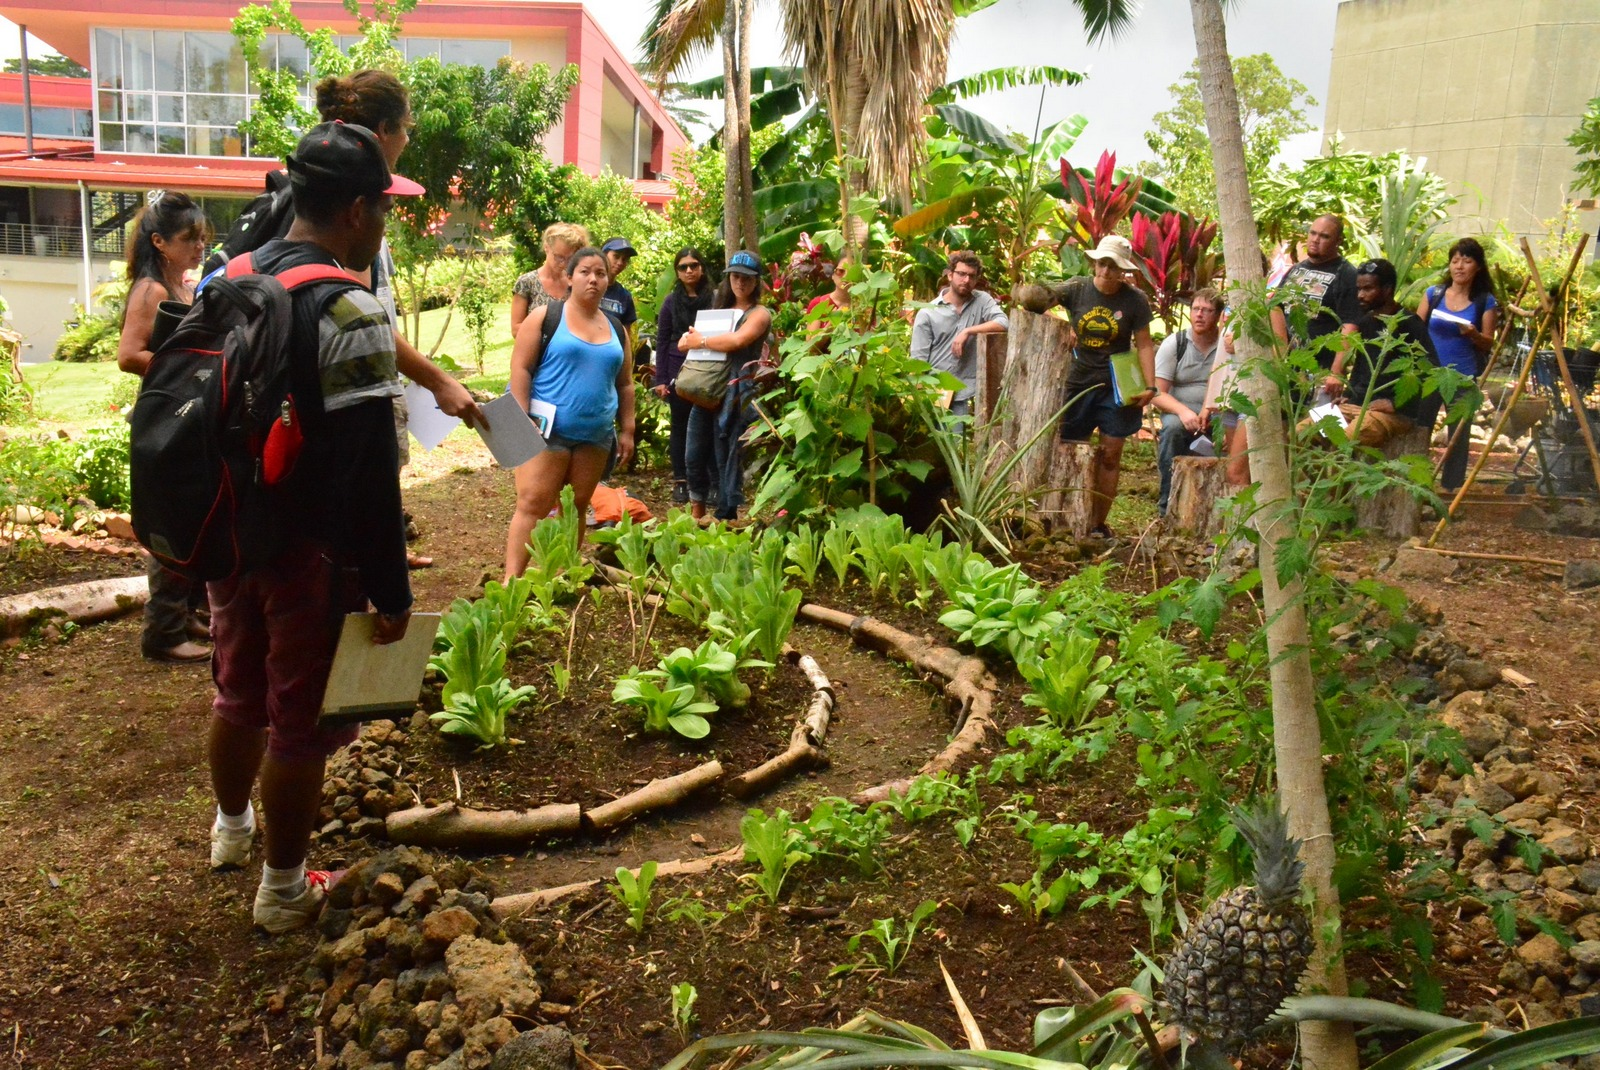 Students Gathered In A Vegetable Garden On Campus.